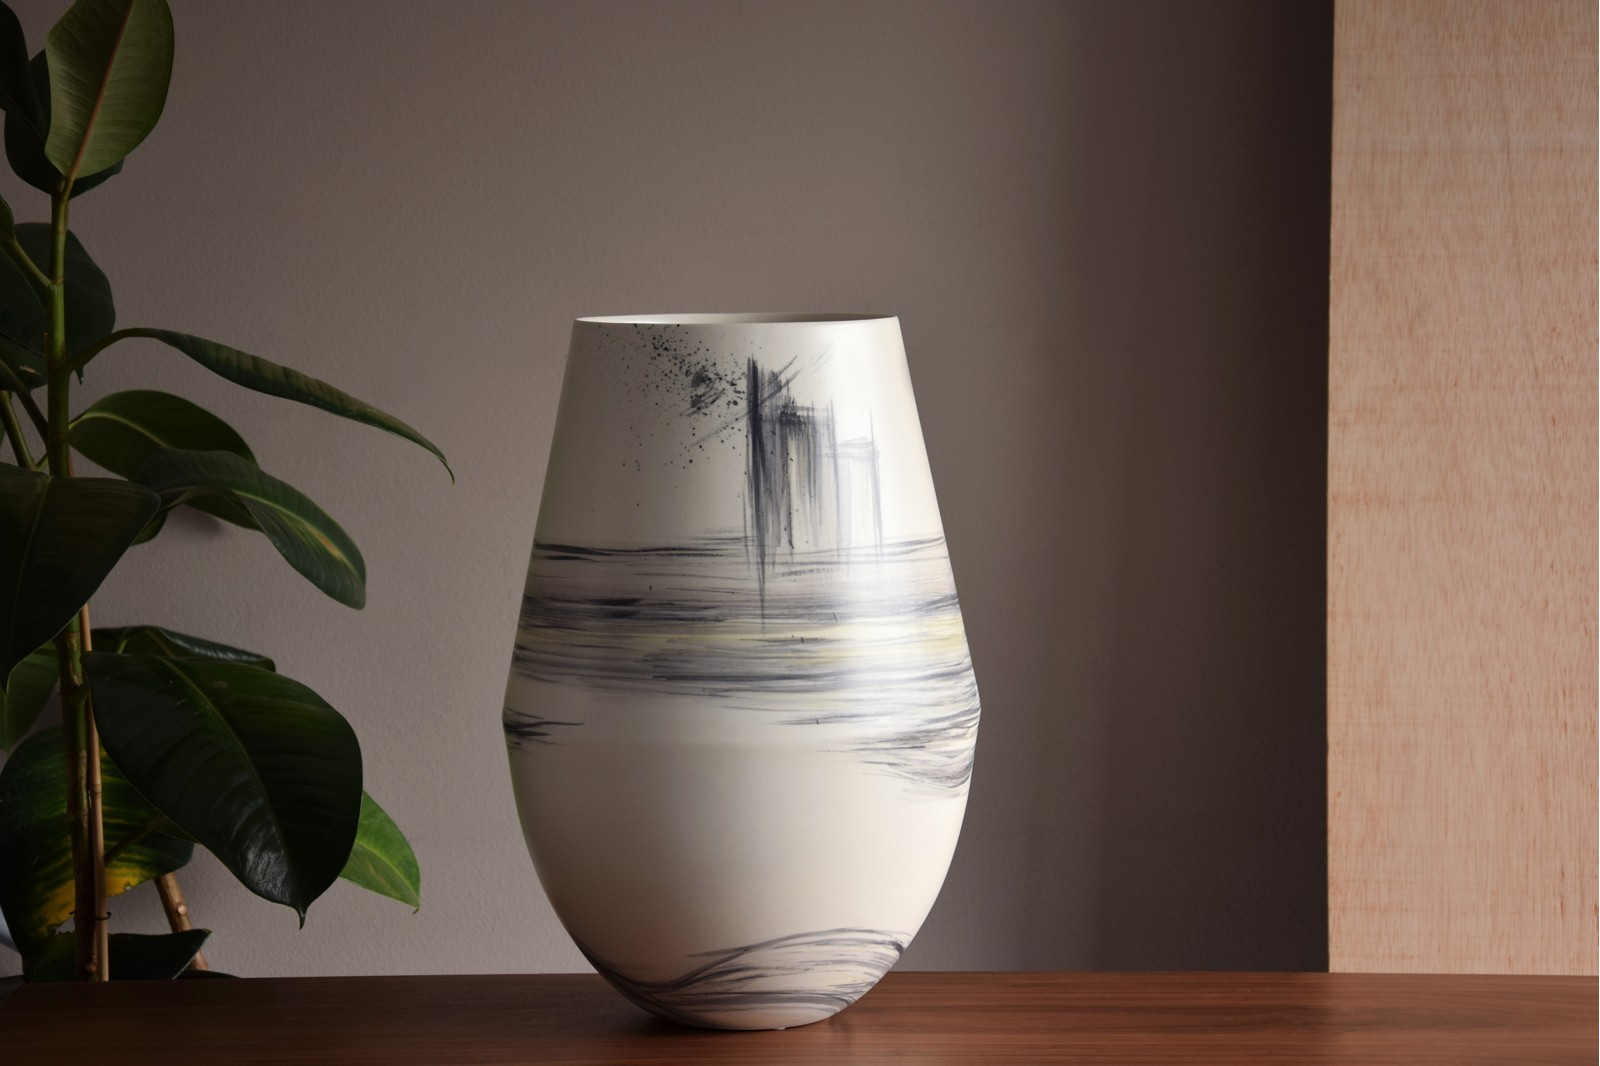 TOKYO COLLECTION: HAND-PAINTED CERAMIC VASES